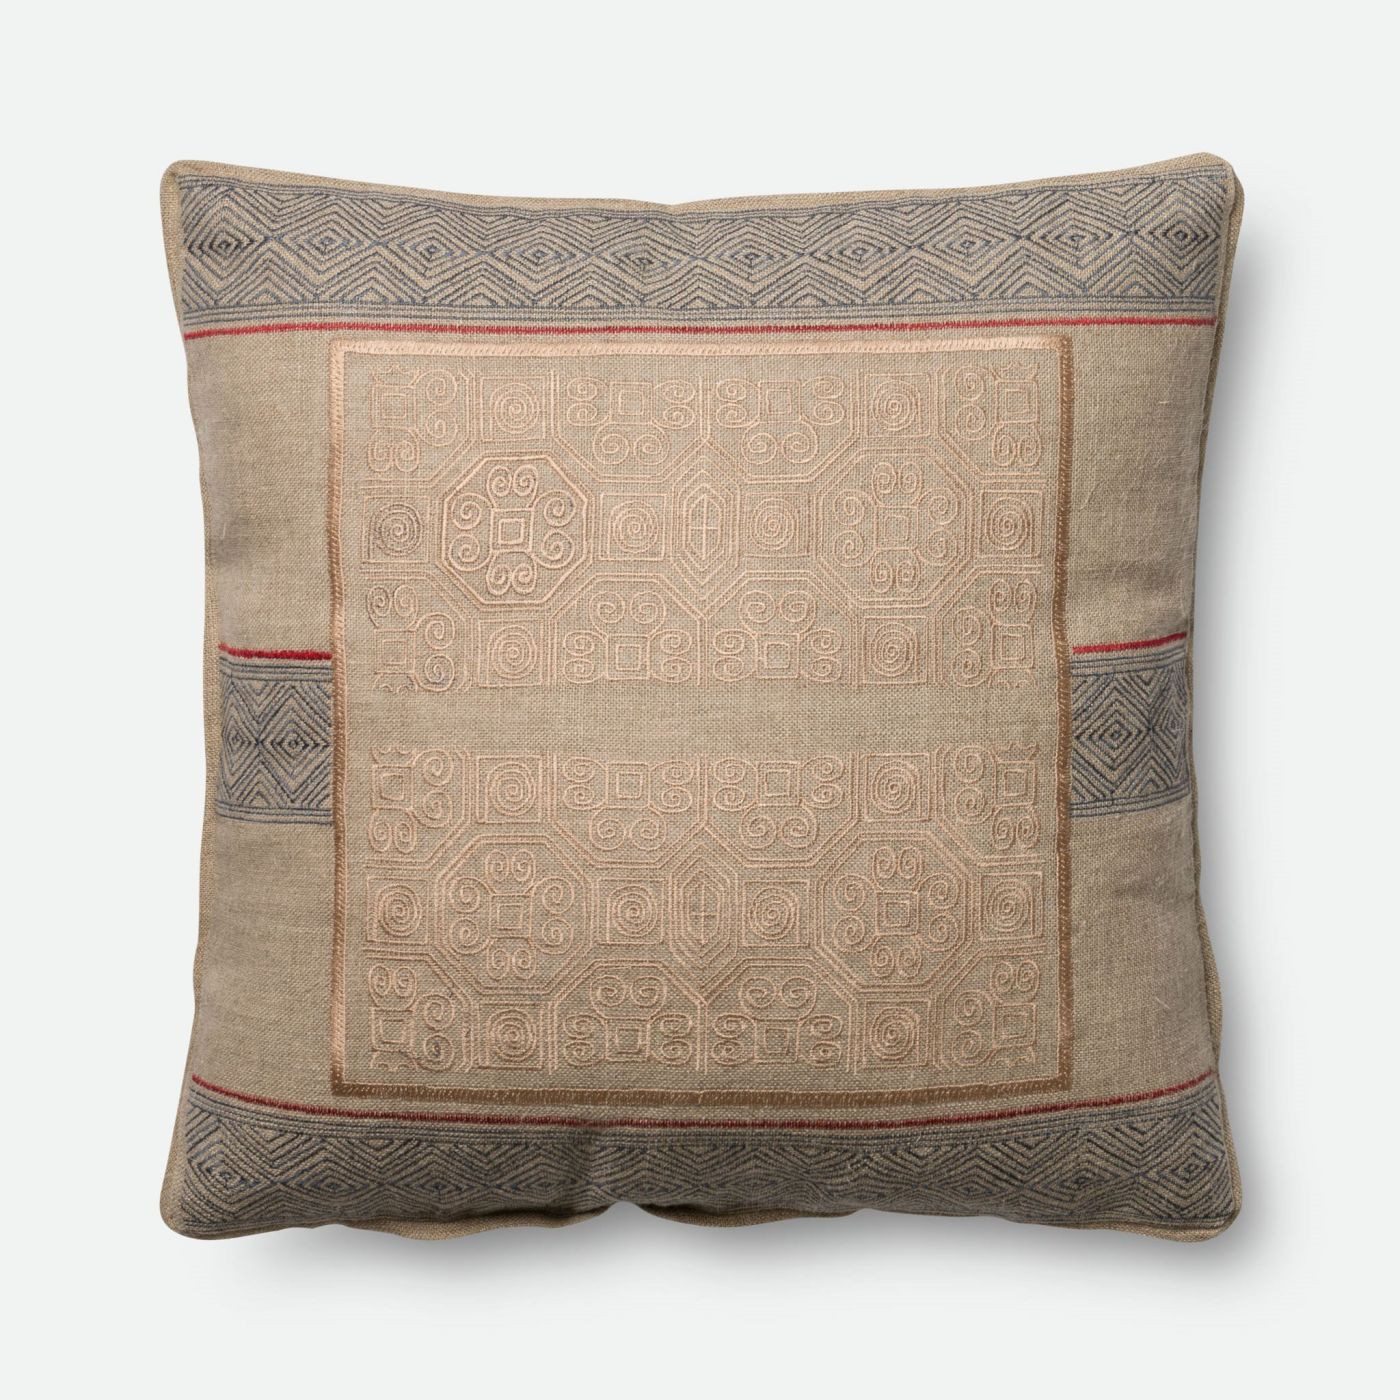 Throw Pillow Warehouse : Loloi Rugs Loloi Beige / Blue Decorative Throw Pillow (P0431) DSETP0431BEBBPIL5. Only $89.00 at ...